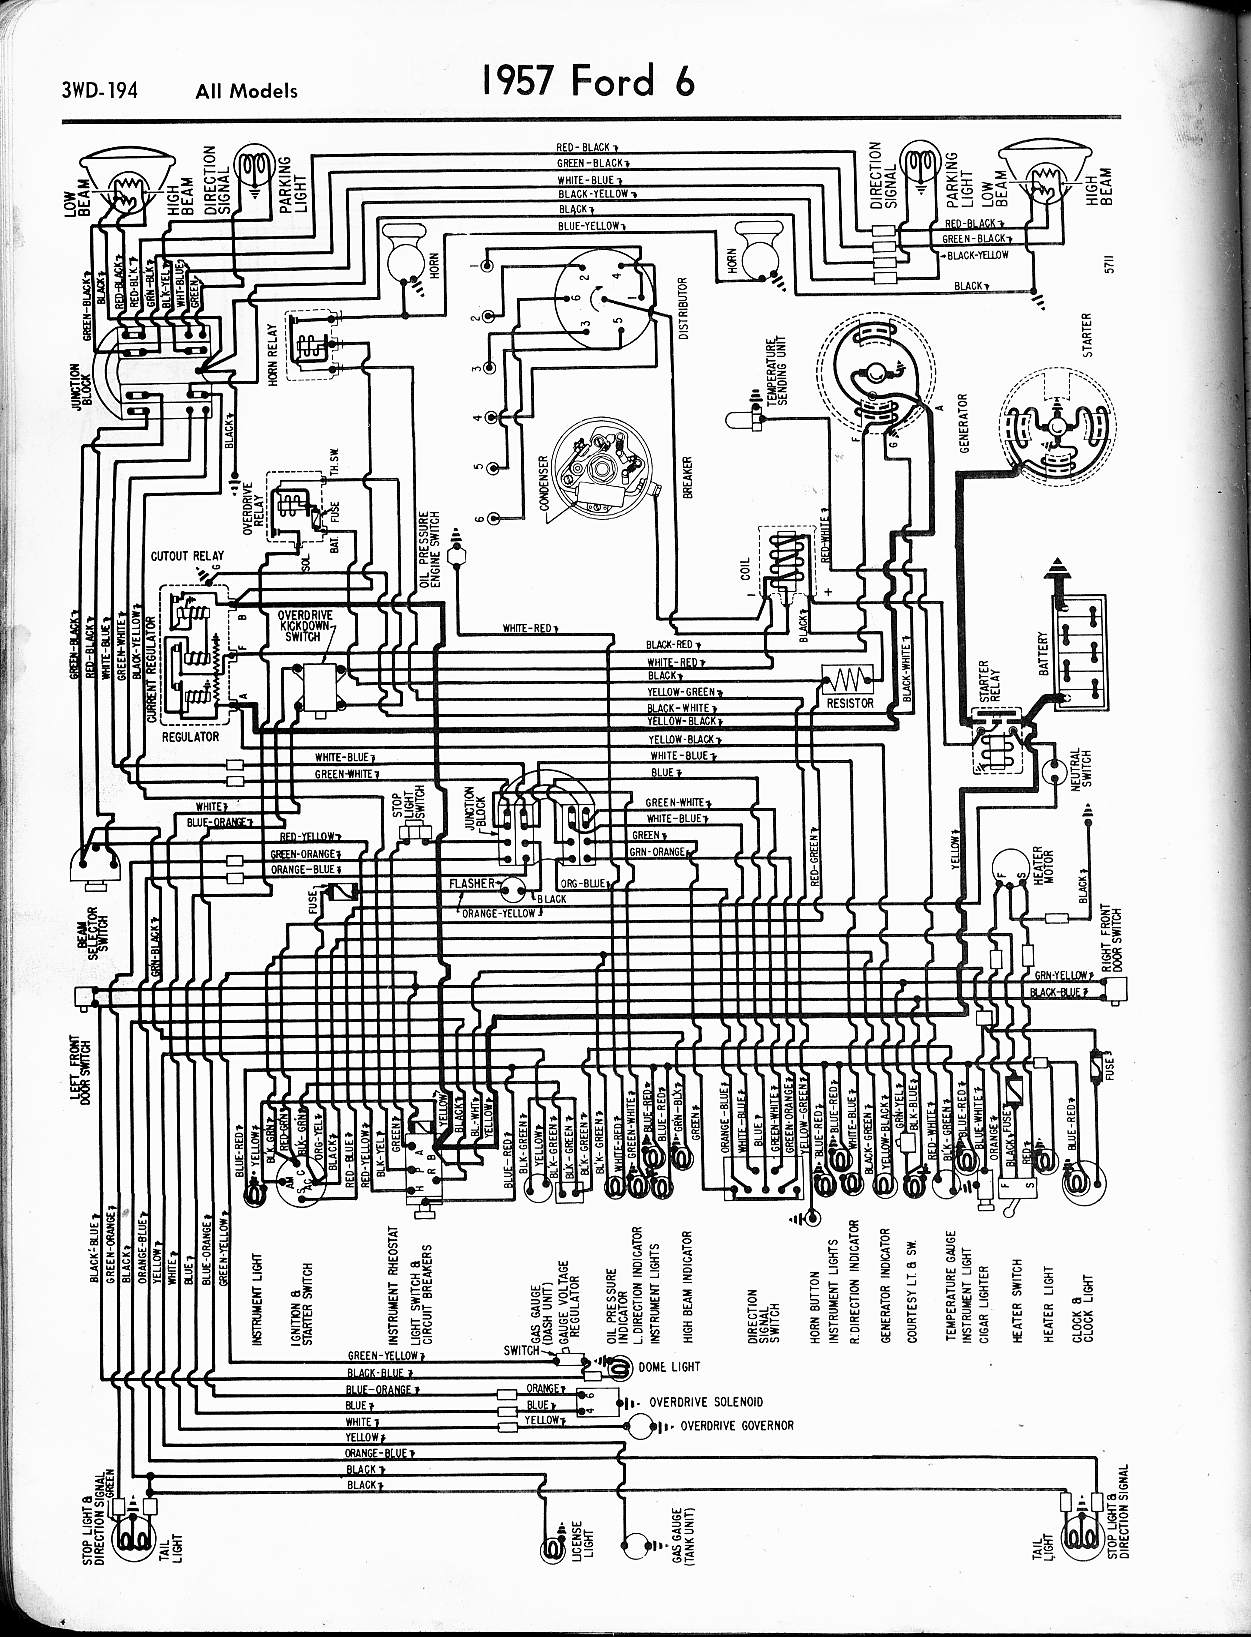 1958 Ford Wiring Diagram Trusted Schematics 1955 Buick Generator 1957 Truck Parts